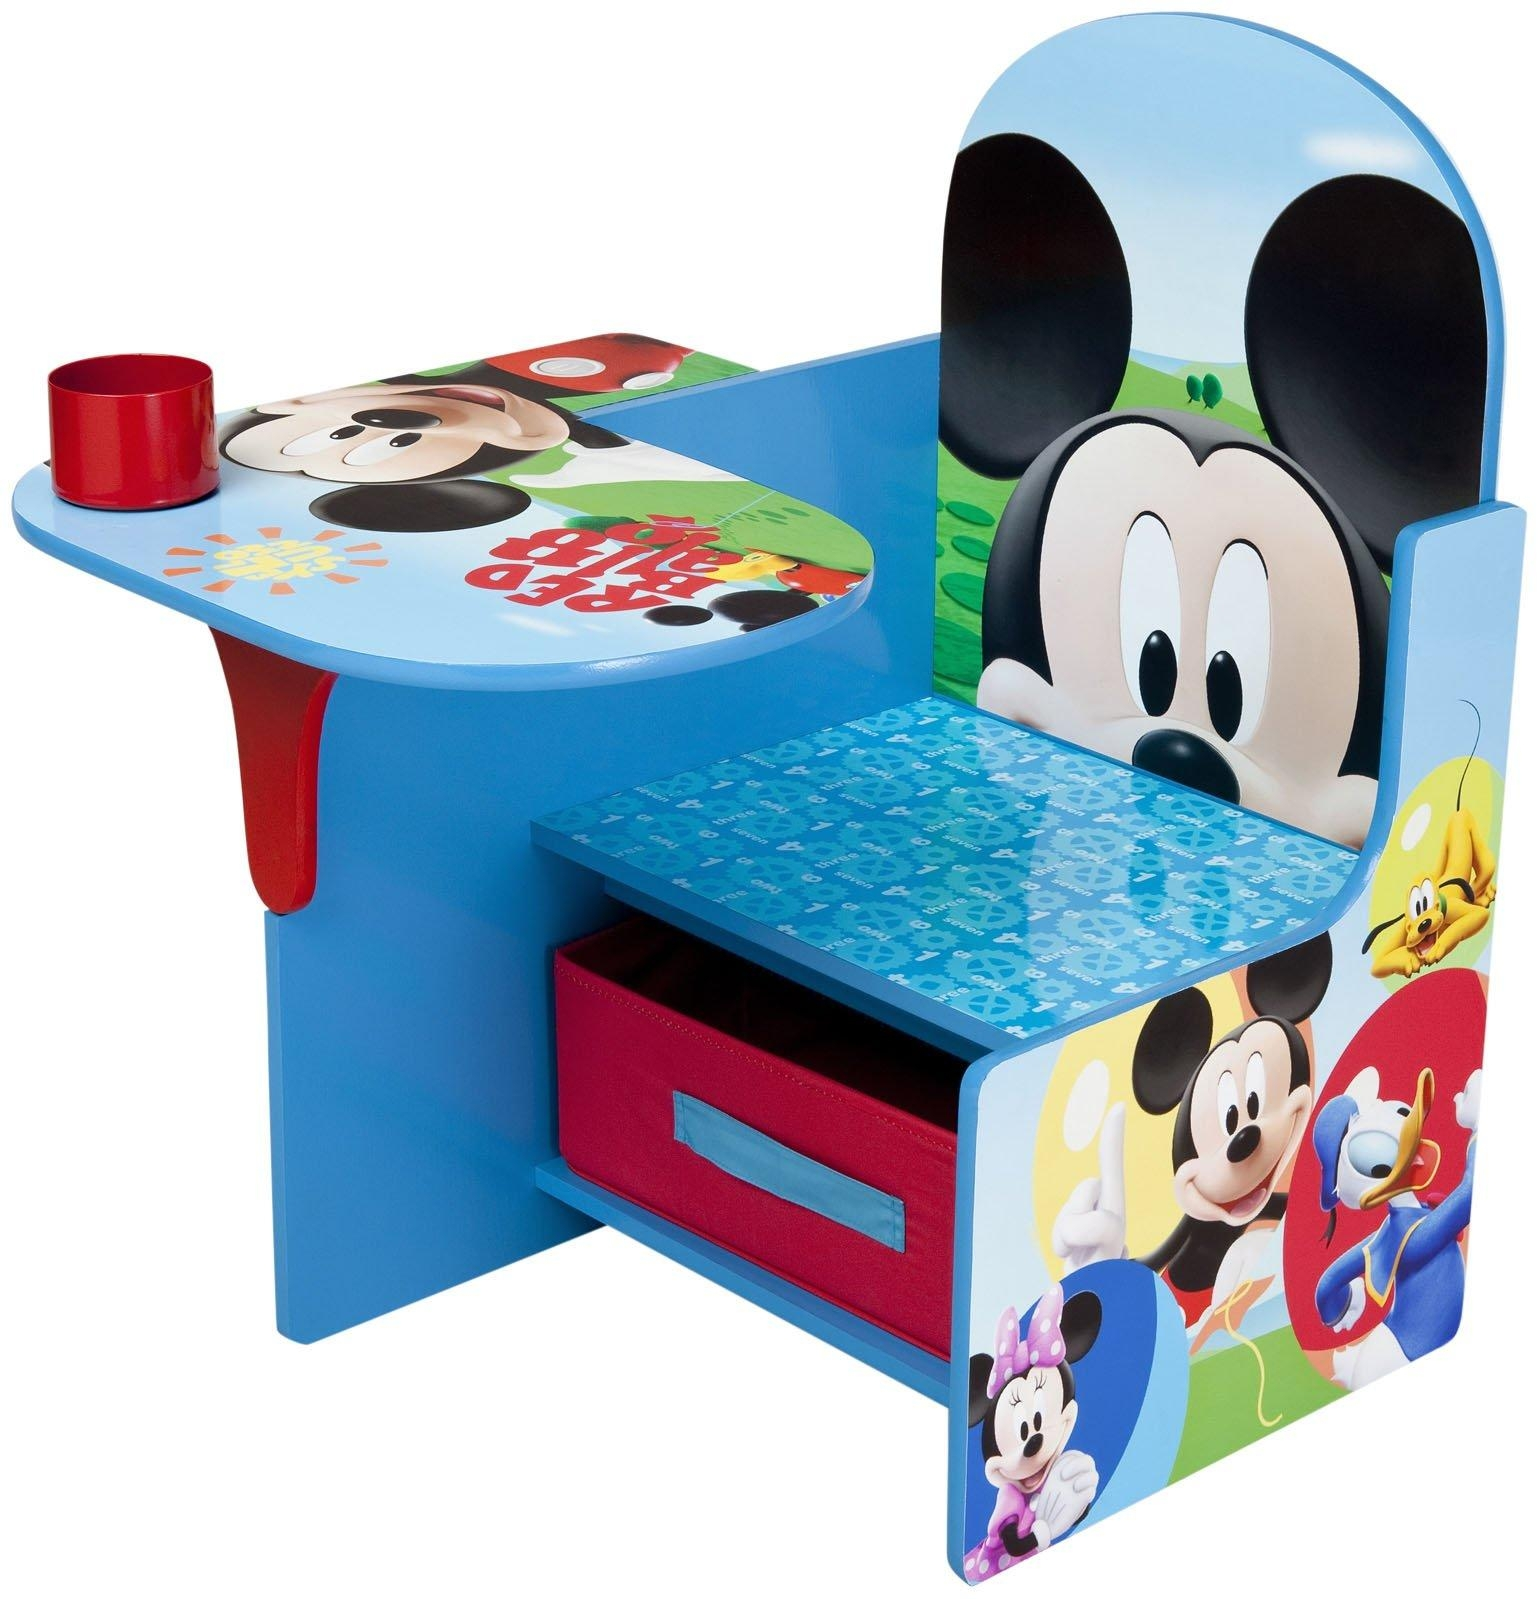 Mickey Mouse Clubhouse Sofa With Ideas Hd Photos 22648 | Kengire With Regard To Mickey Mouse Clubhouse Couches (View 6 of 20)